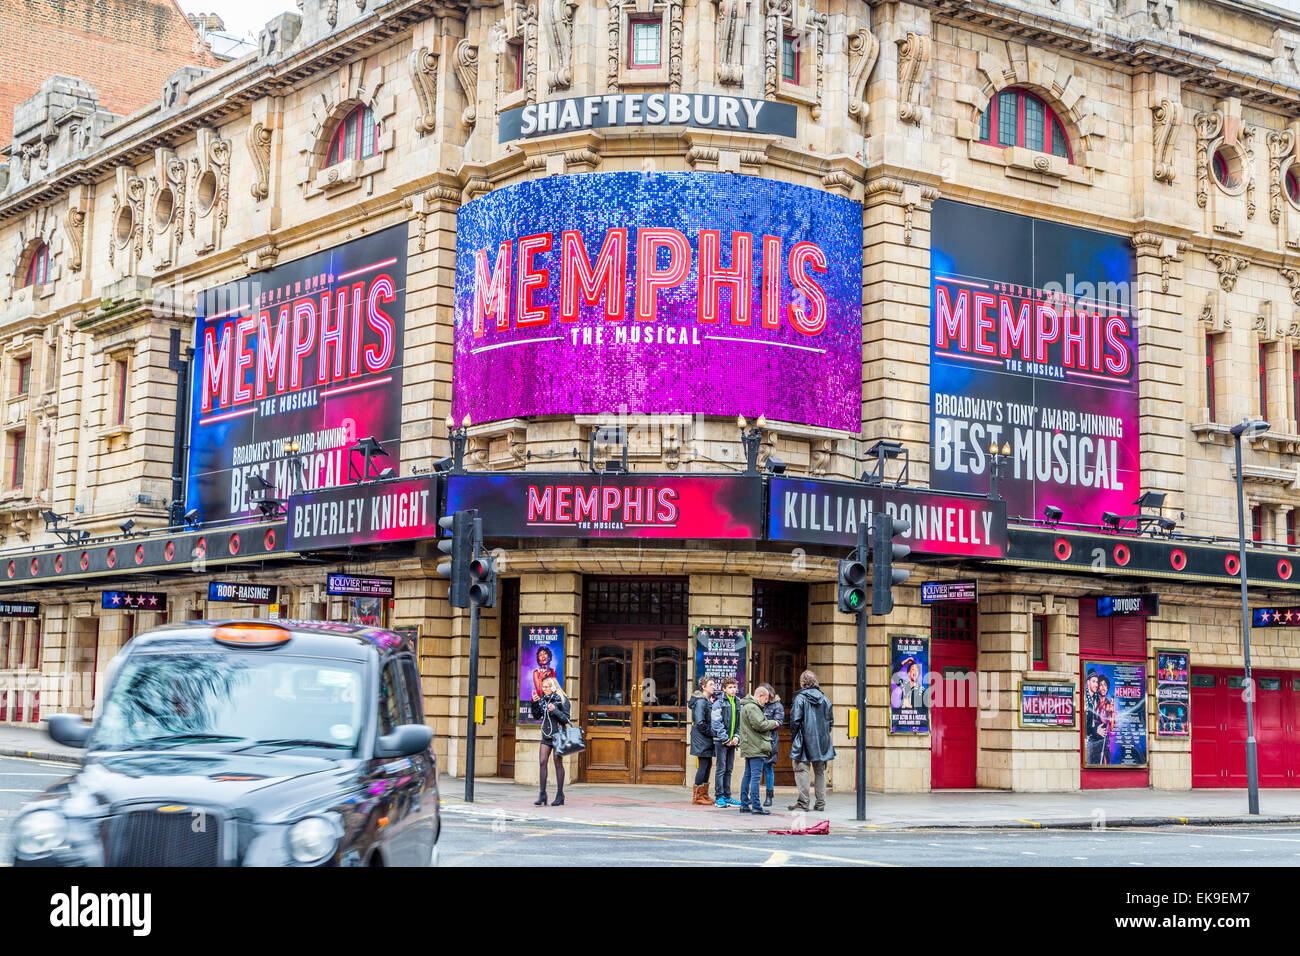 A landscape image of the Shaftesbury Theatre featuring Memphis The Musical and a passing black taxi cab - Stock Image